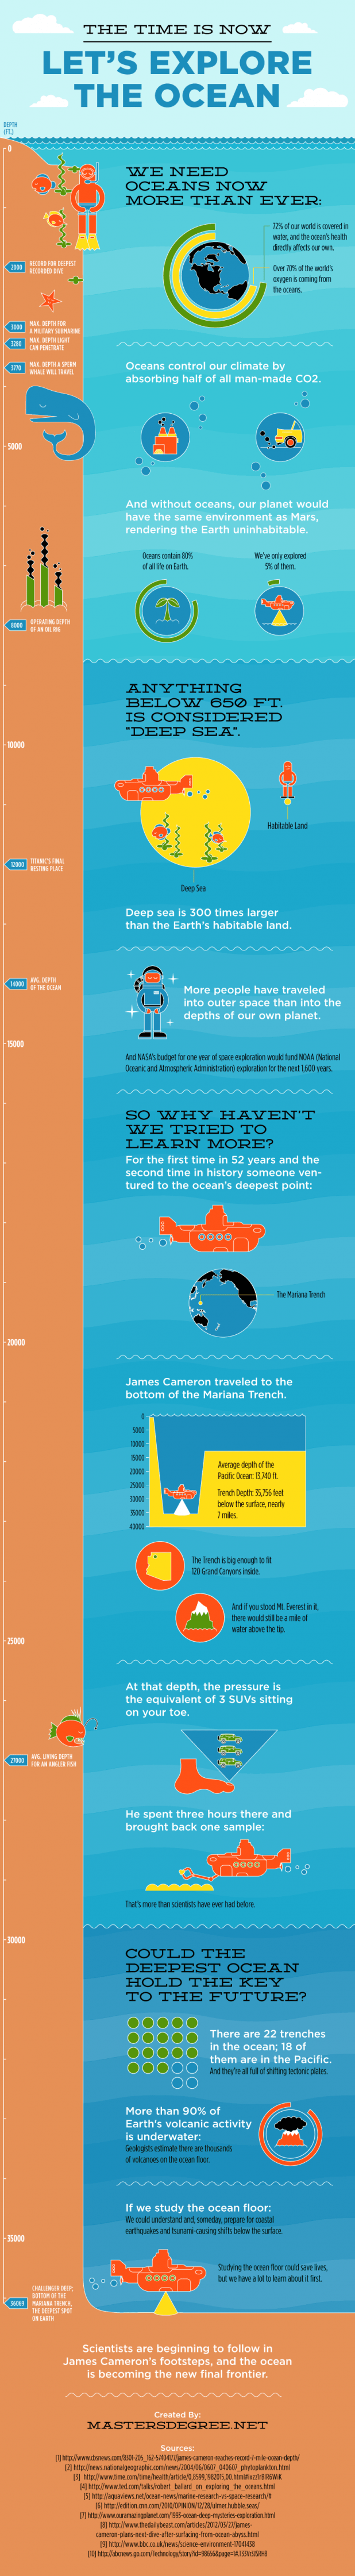 this shows the reasons why the ocean is important to us and why we should continue to explore its depths.